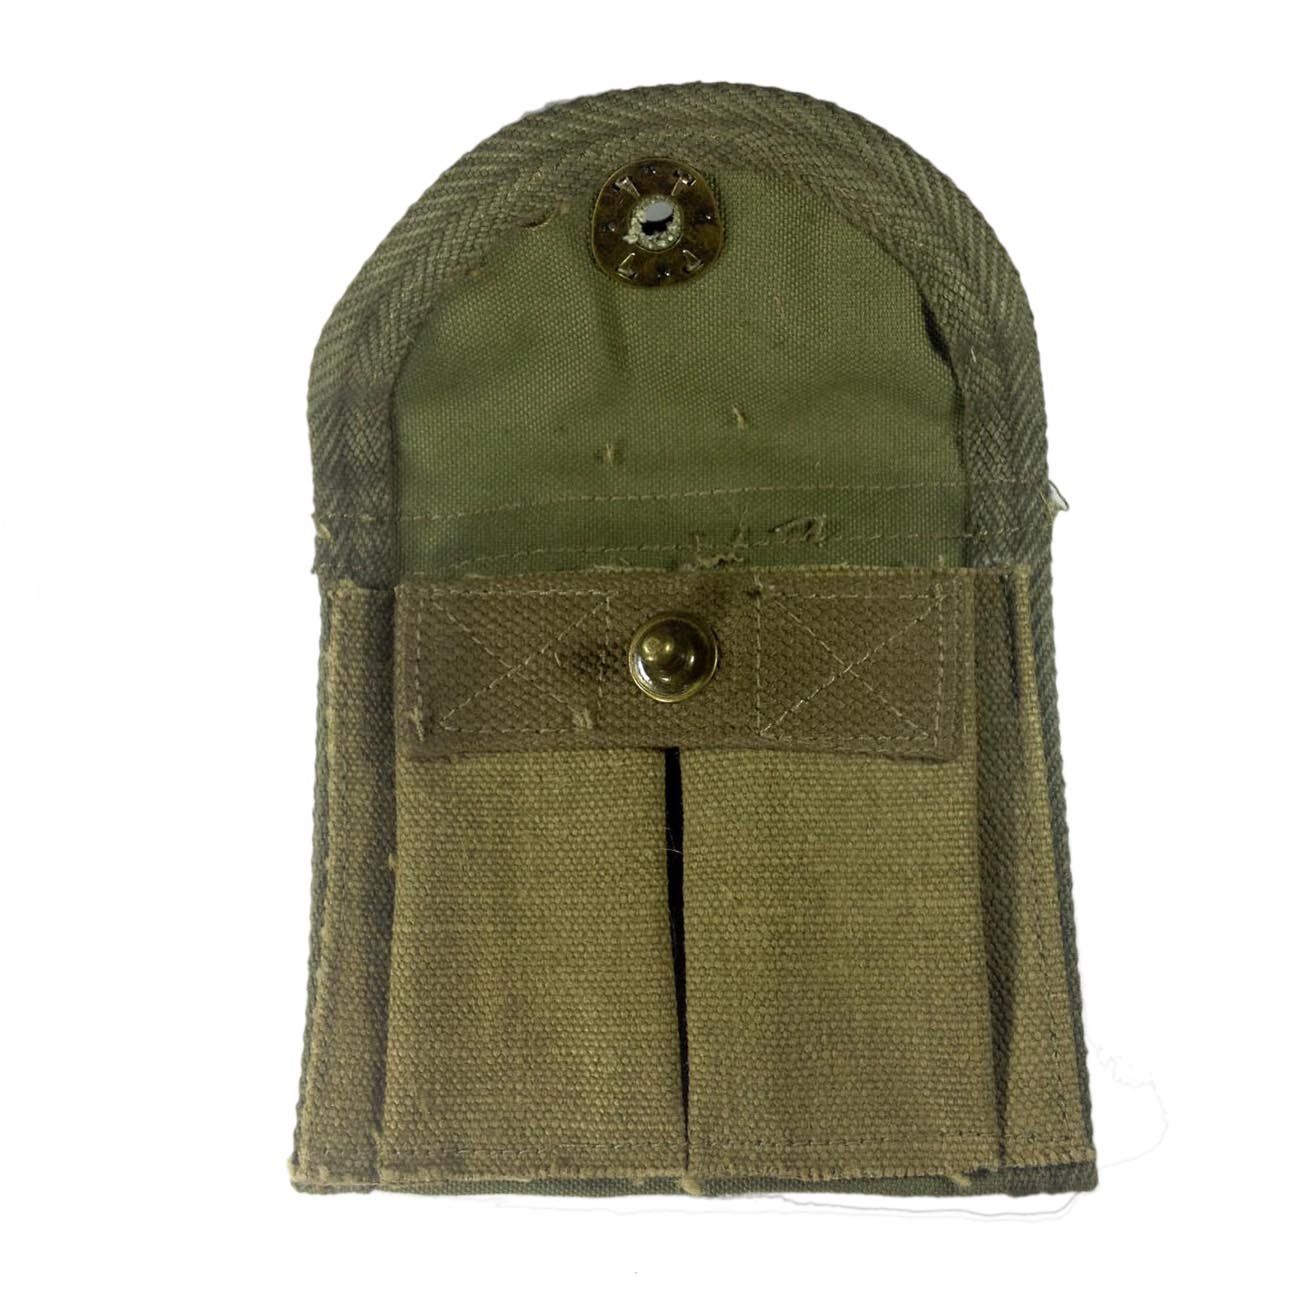 Collectables WW2 US Military M1 Carbine Rifle Mag Pouch repo Field Gear